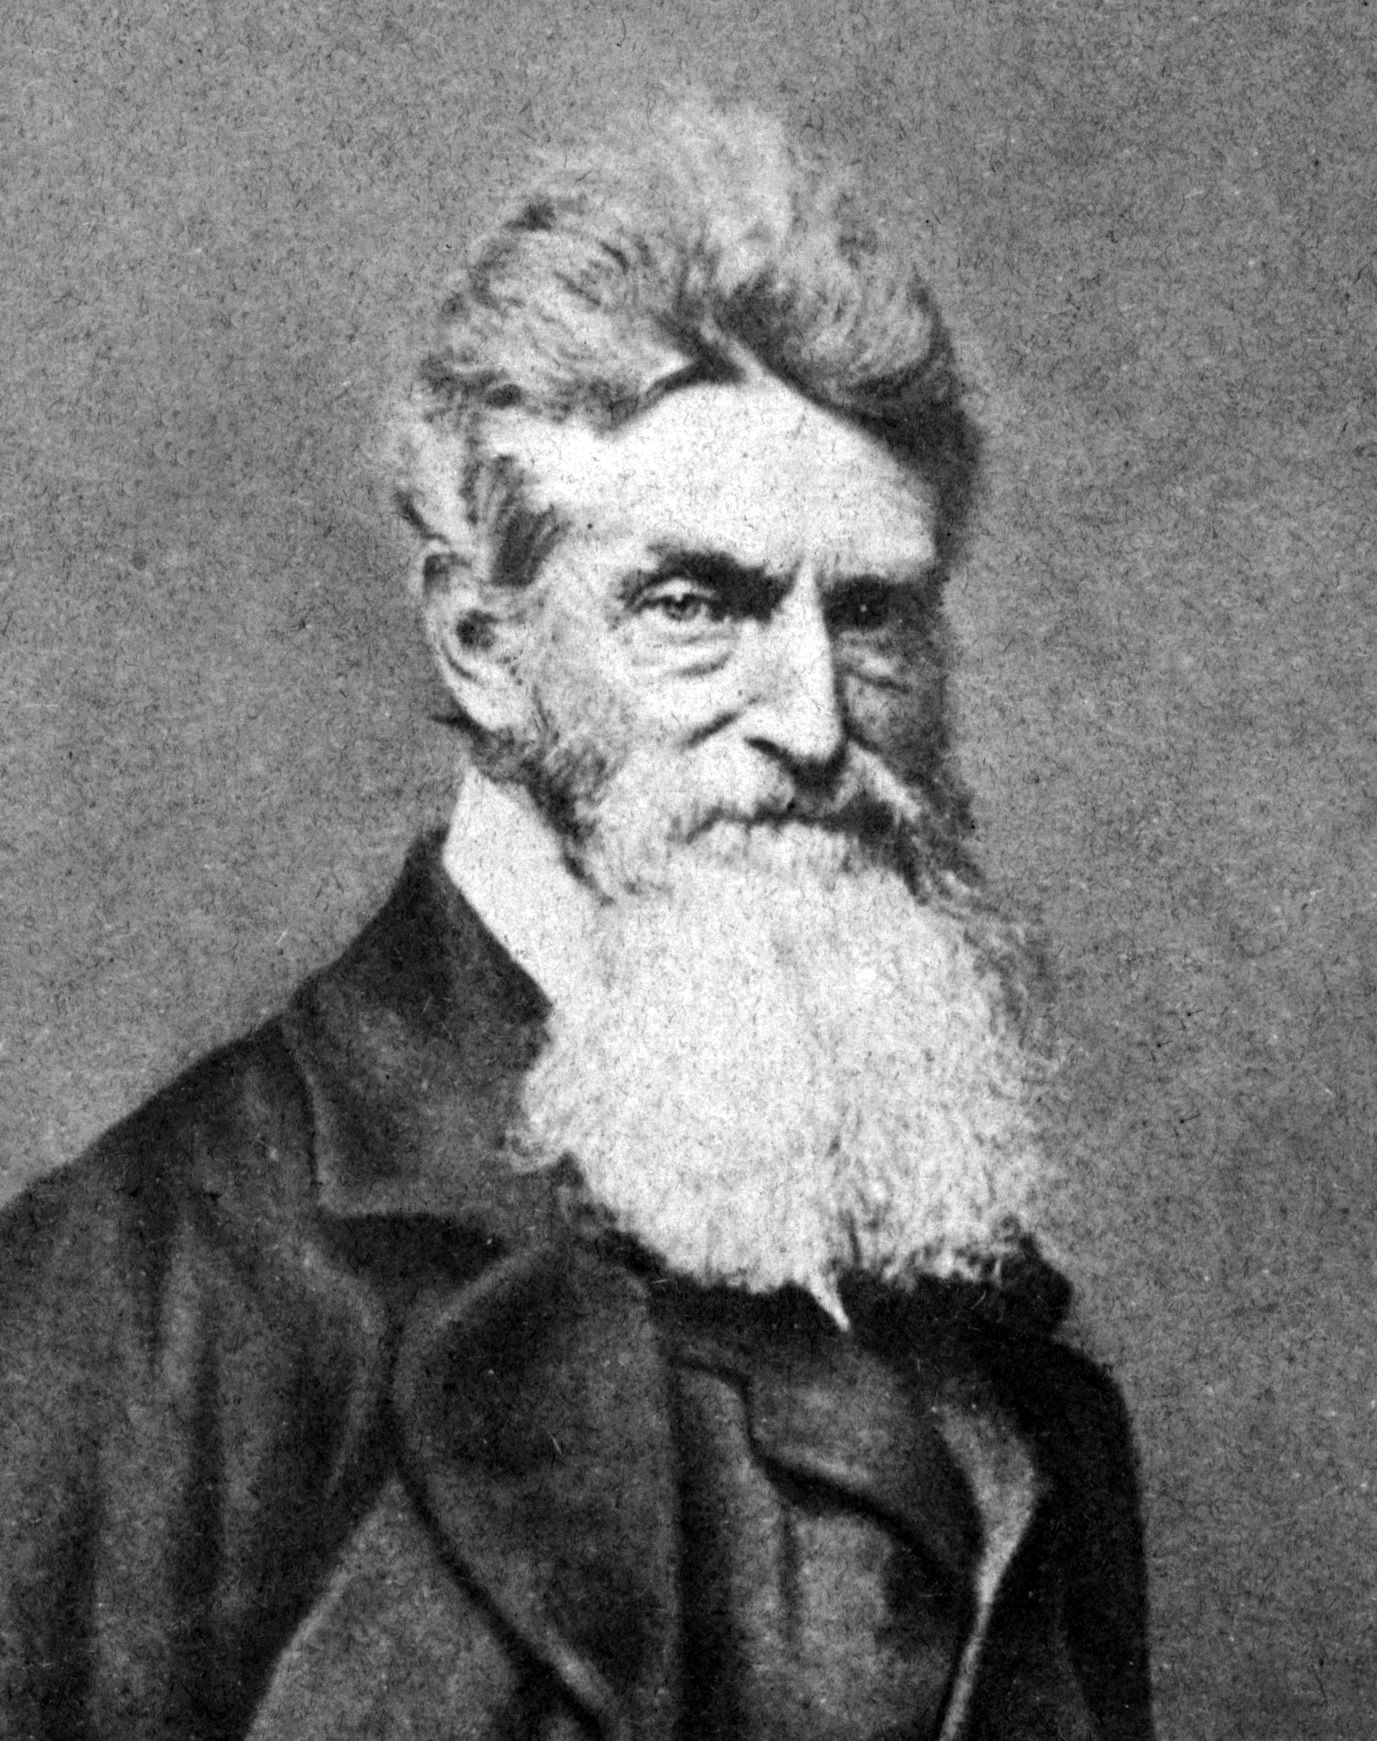 john browns raid John brown's raid on harpers ferry: a brief history with documents / edition 1 despised and admired during his life and after his execution, the abolitionist john brown polarized the nation and remains one of the most controversial figures in us history.